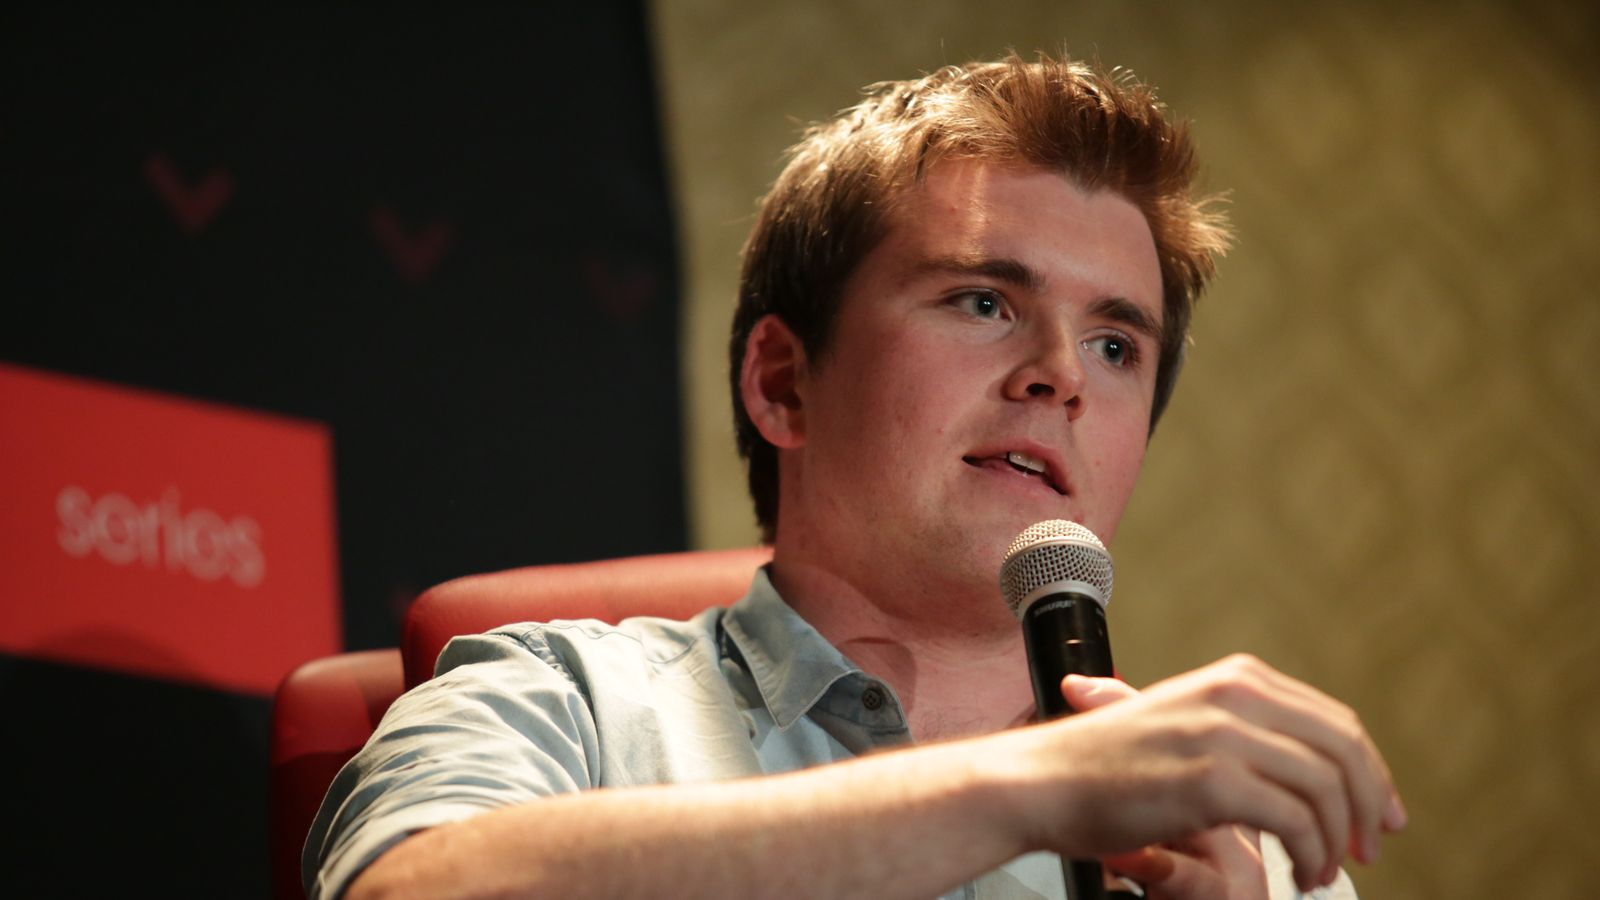 recode.net - Jason Del Rey - Payments startup Stripe says it's still too hard to sell stuff online